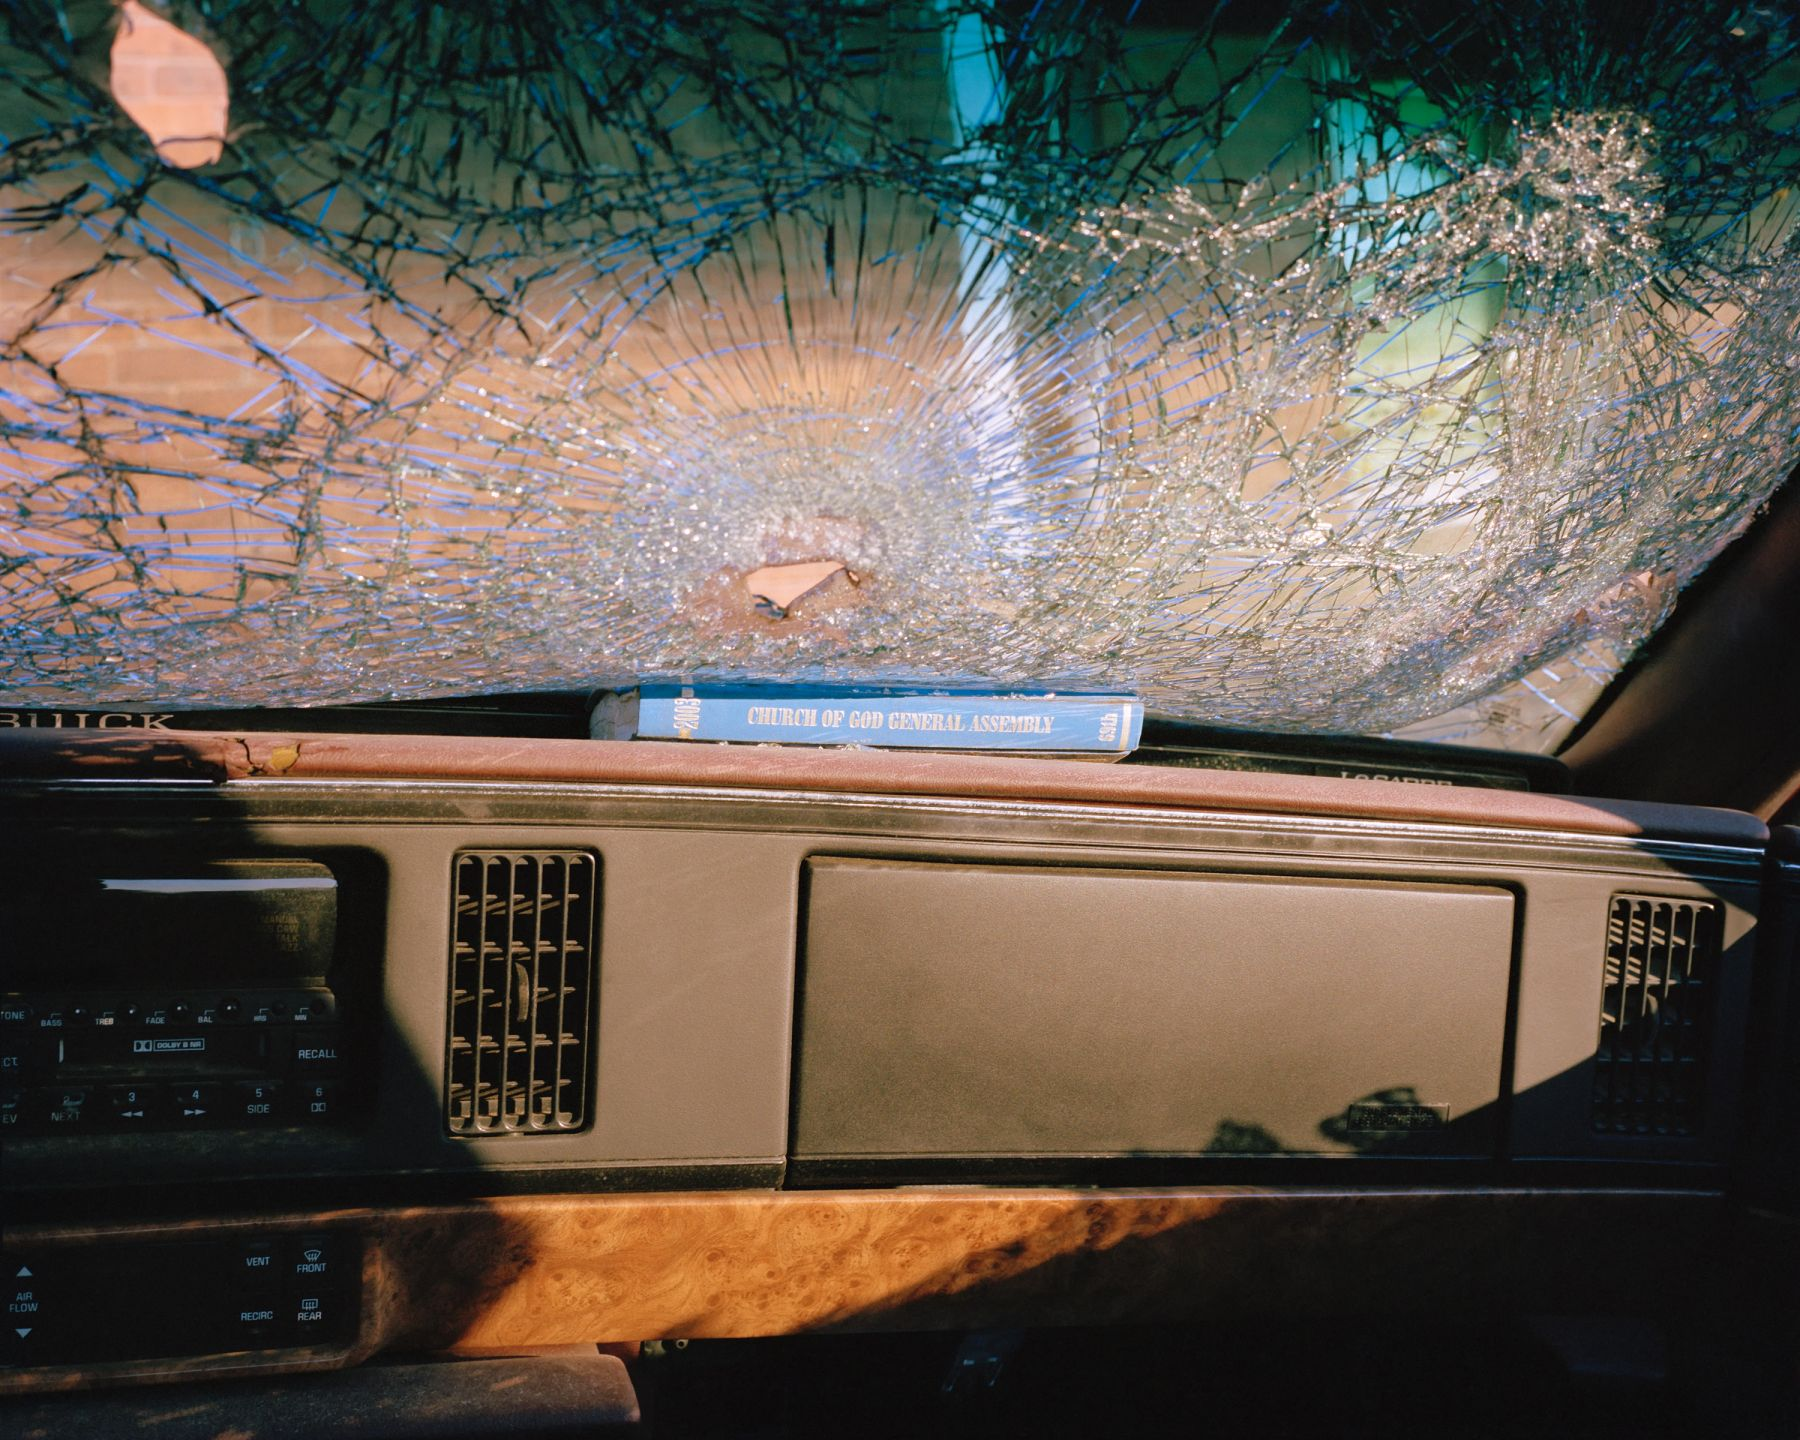 McNair Evans, Company Car, 2010, Archival pigment print, 20 x 25 inches and 32 x 40 inches, Editions of 5